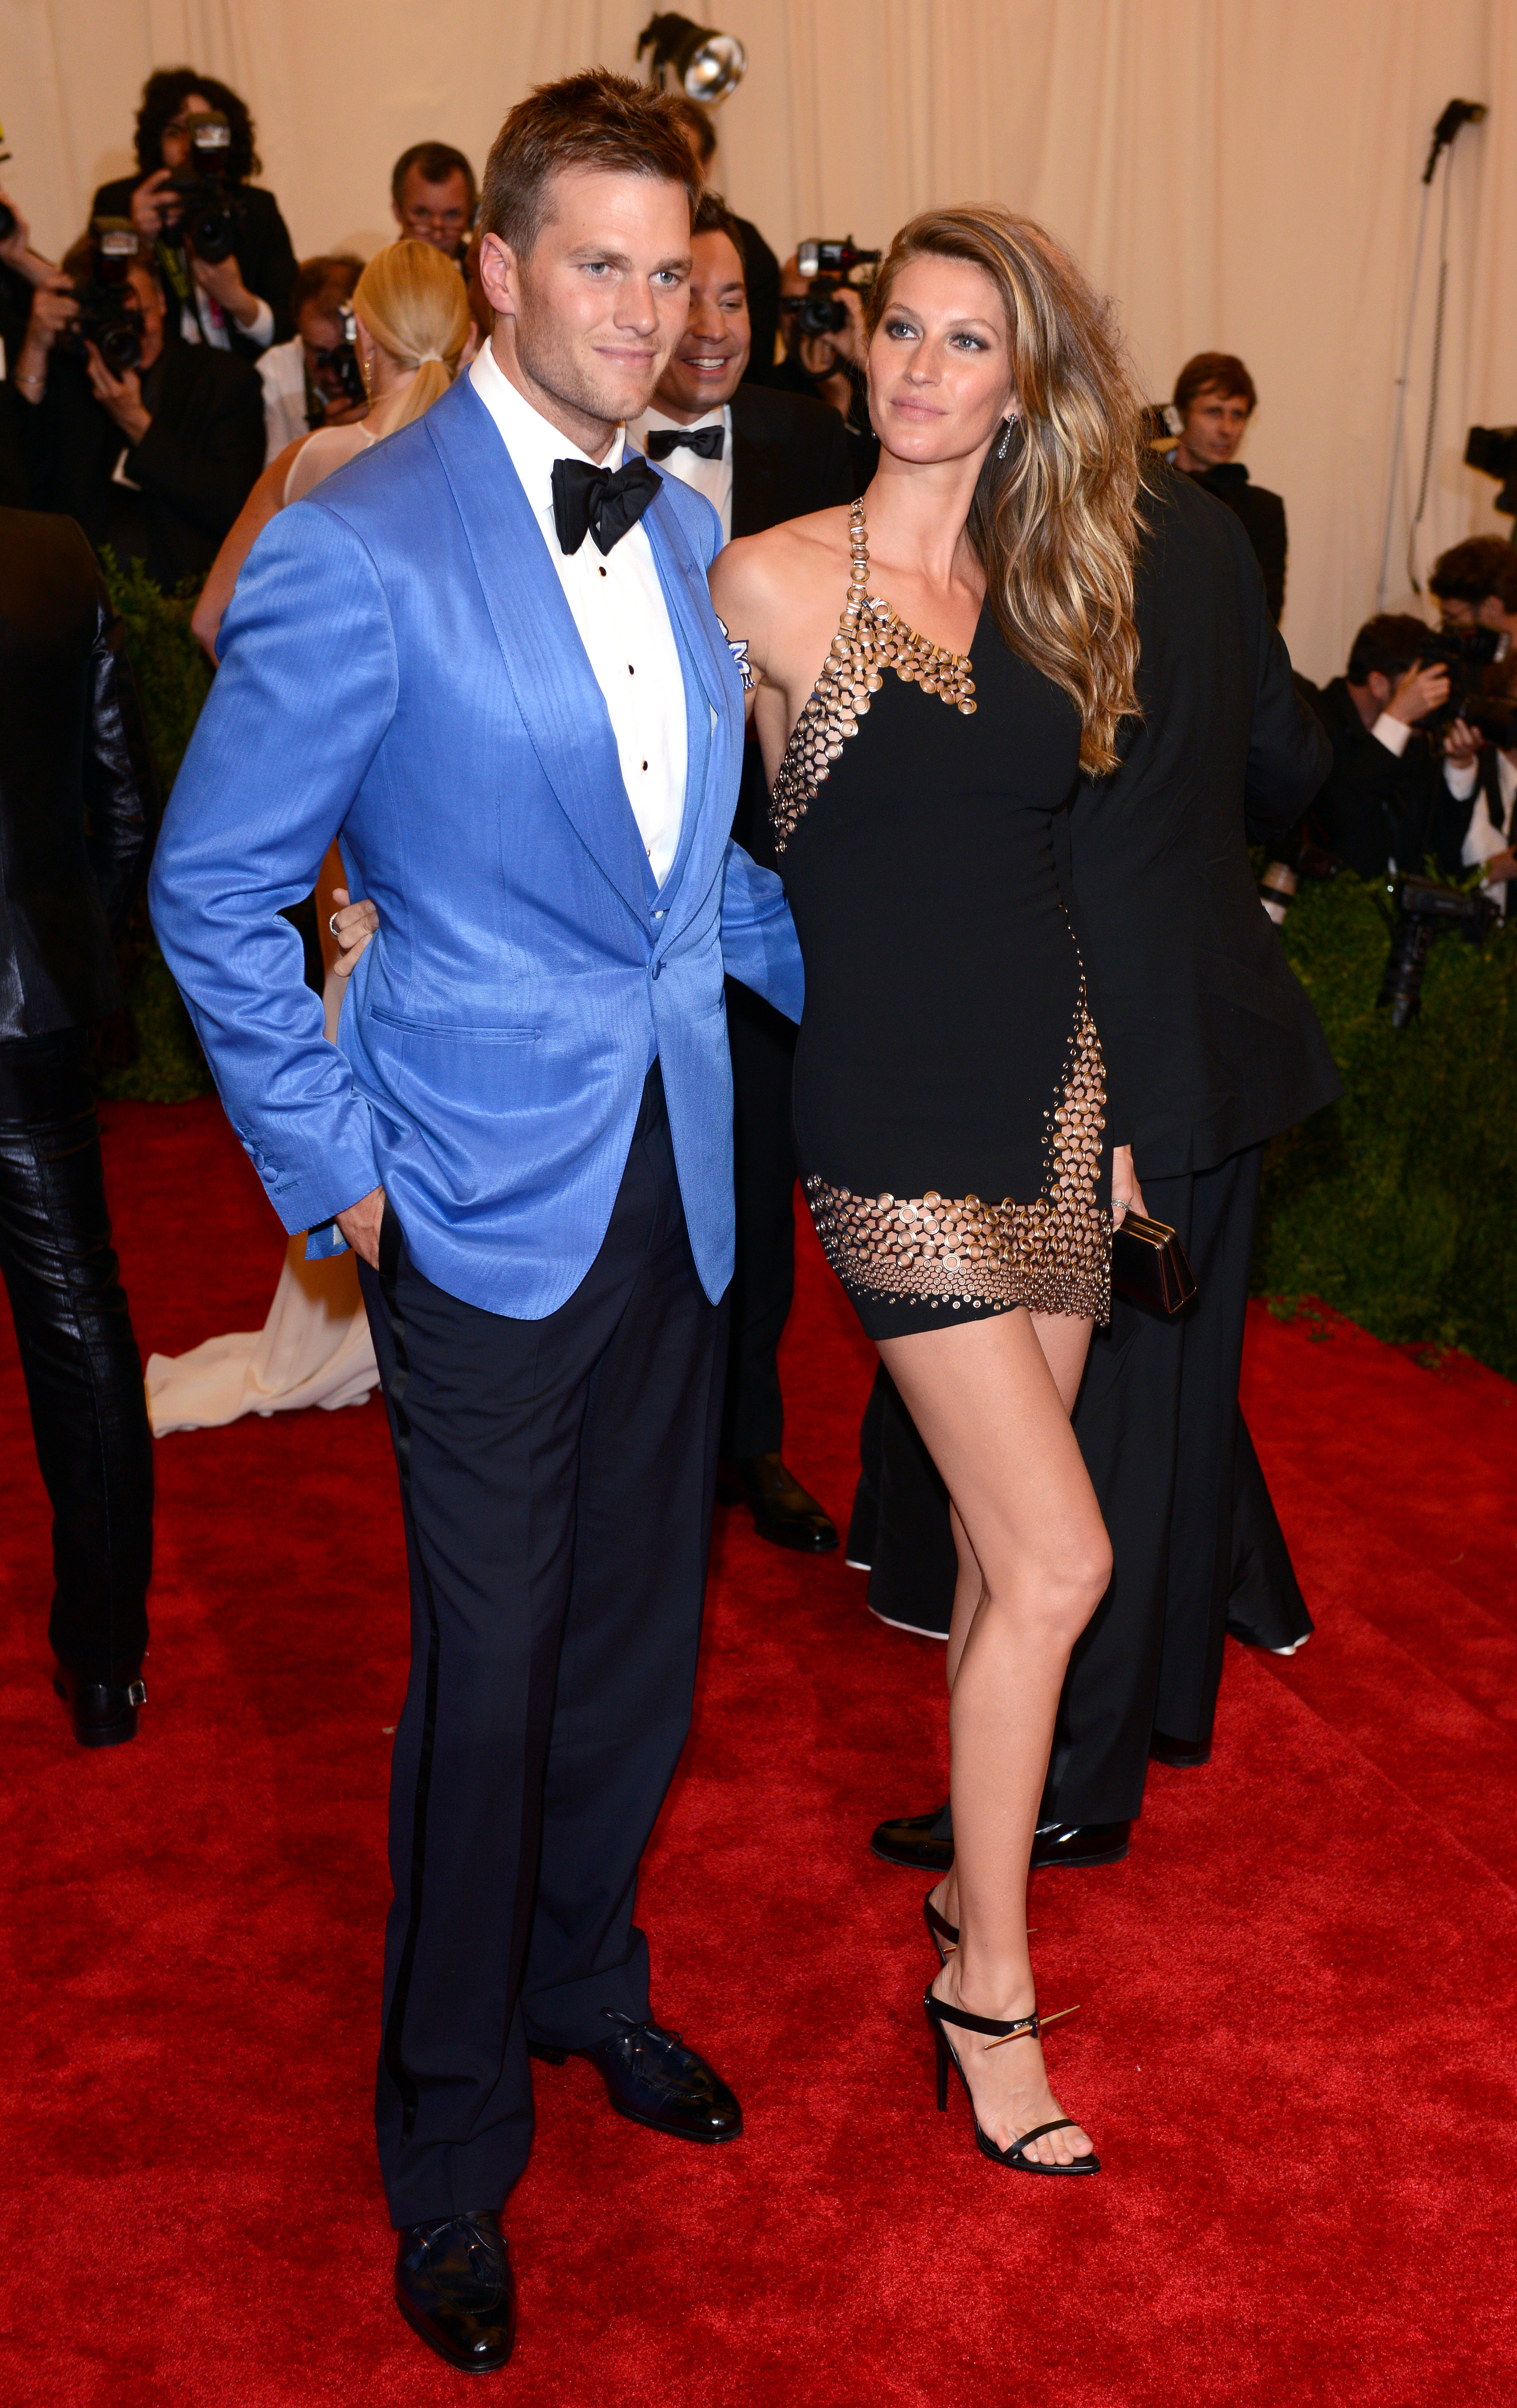 NEW YORK, NY - MAY 06: Tom Brady and Gisele Bundchen attends the Costume Institute Gala for the  PUNK: Chaos to Couture  exhibition at the Metropolitan Museum of Art on May 6, 2013 in New York City. (Photo by Karwai Tang/FilmMagic)